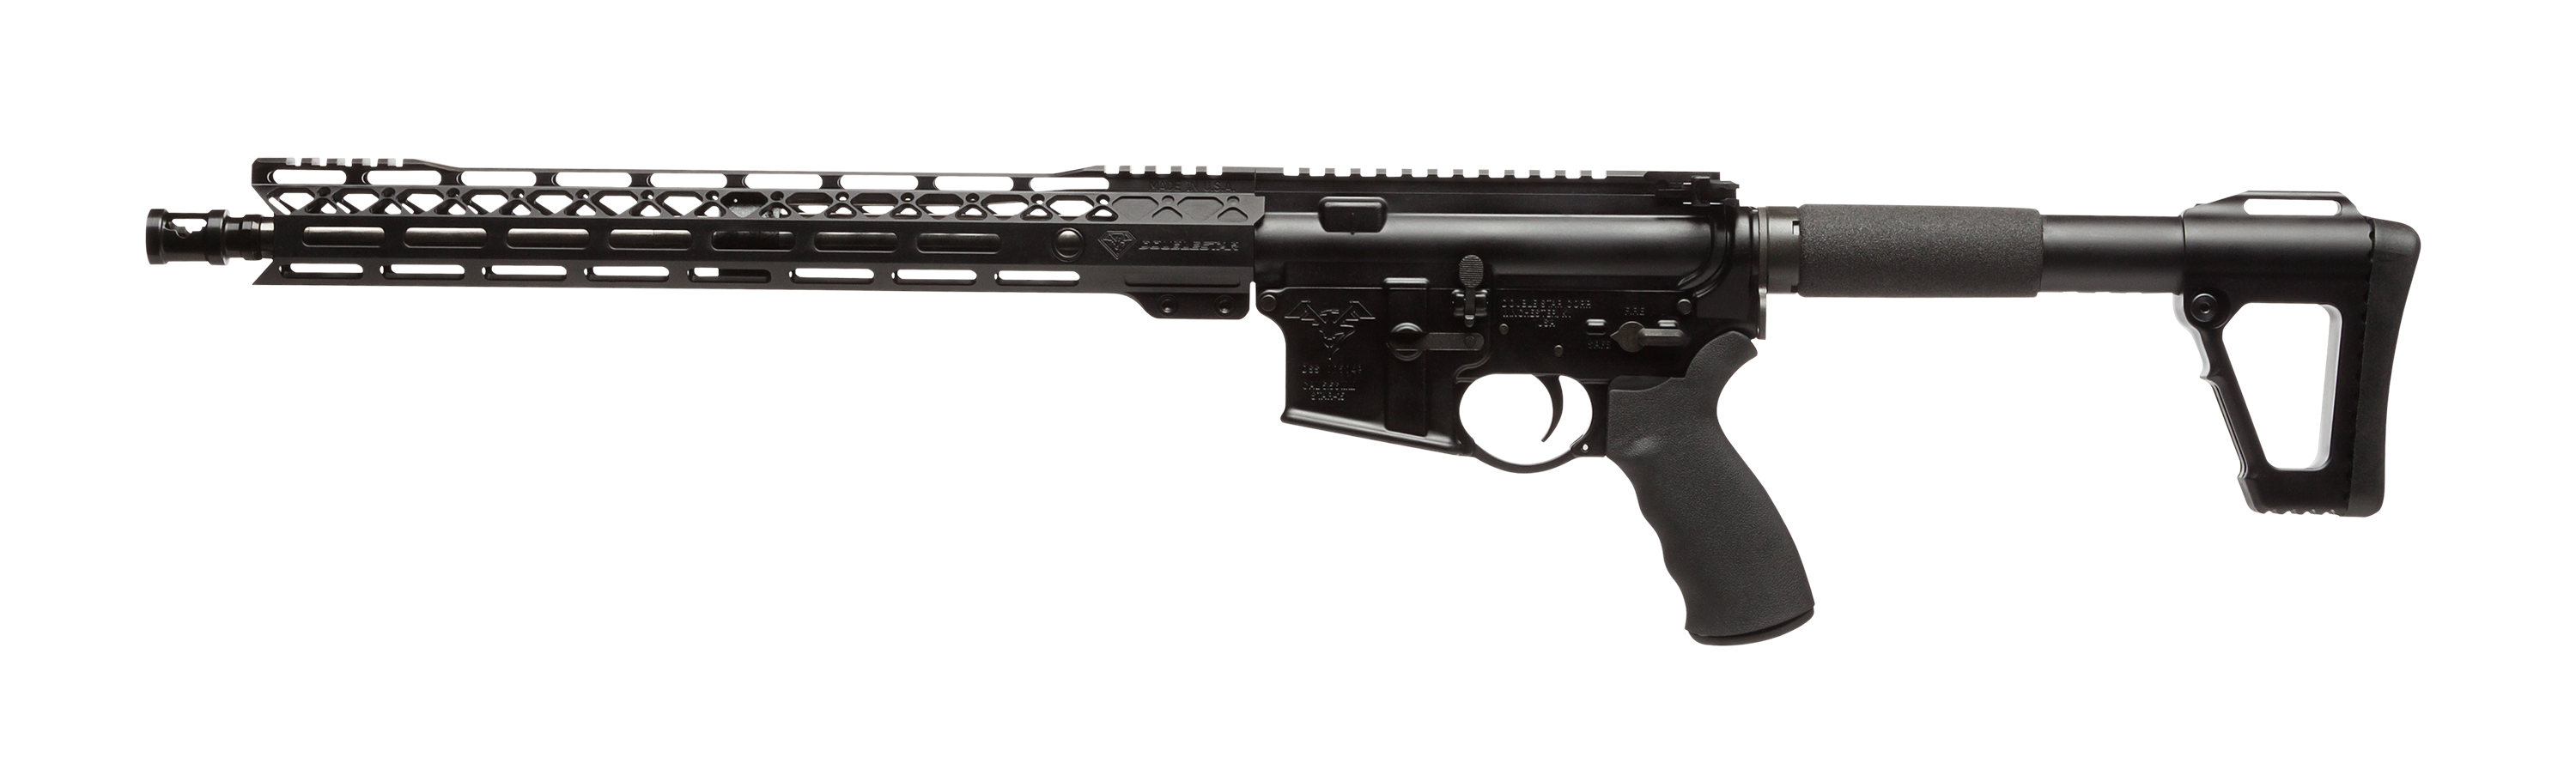 DoubleStar Finds the Sweet Spot Between Accuracy, Weight and Durability with the ZERO Carbine Rifle